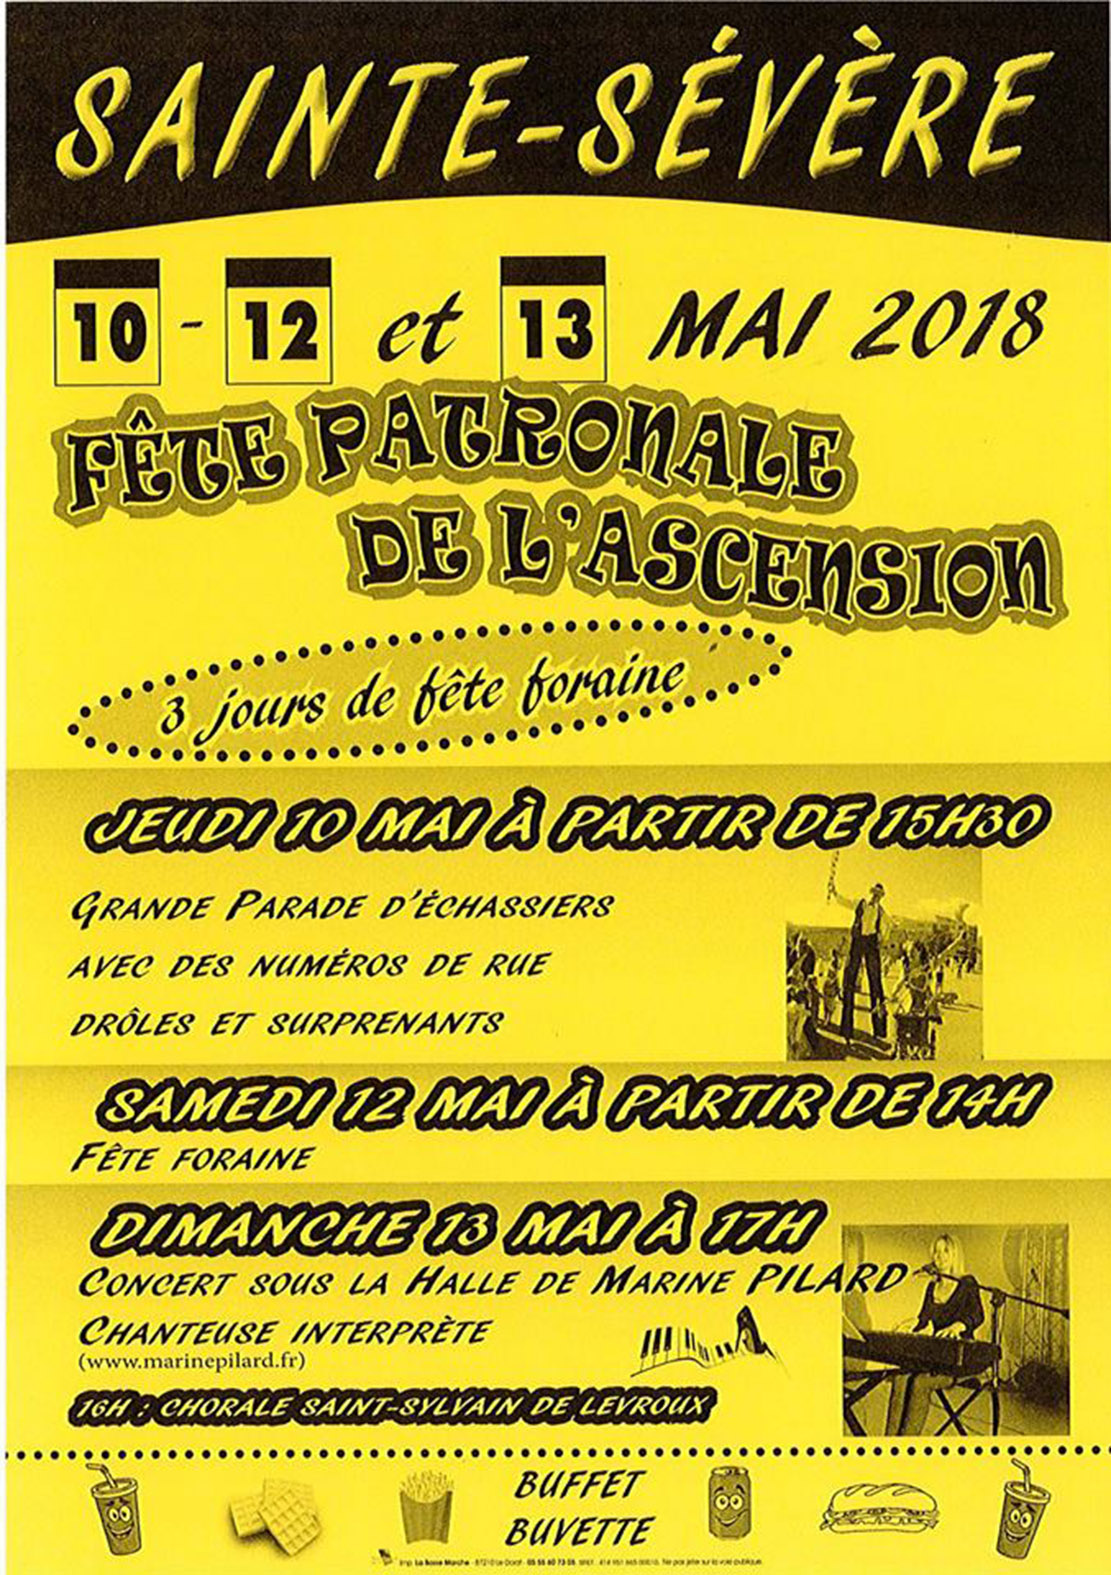 fete_ascension_sainte_severe